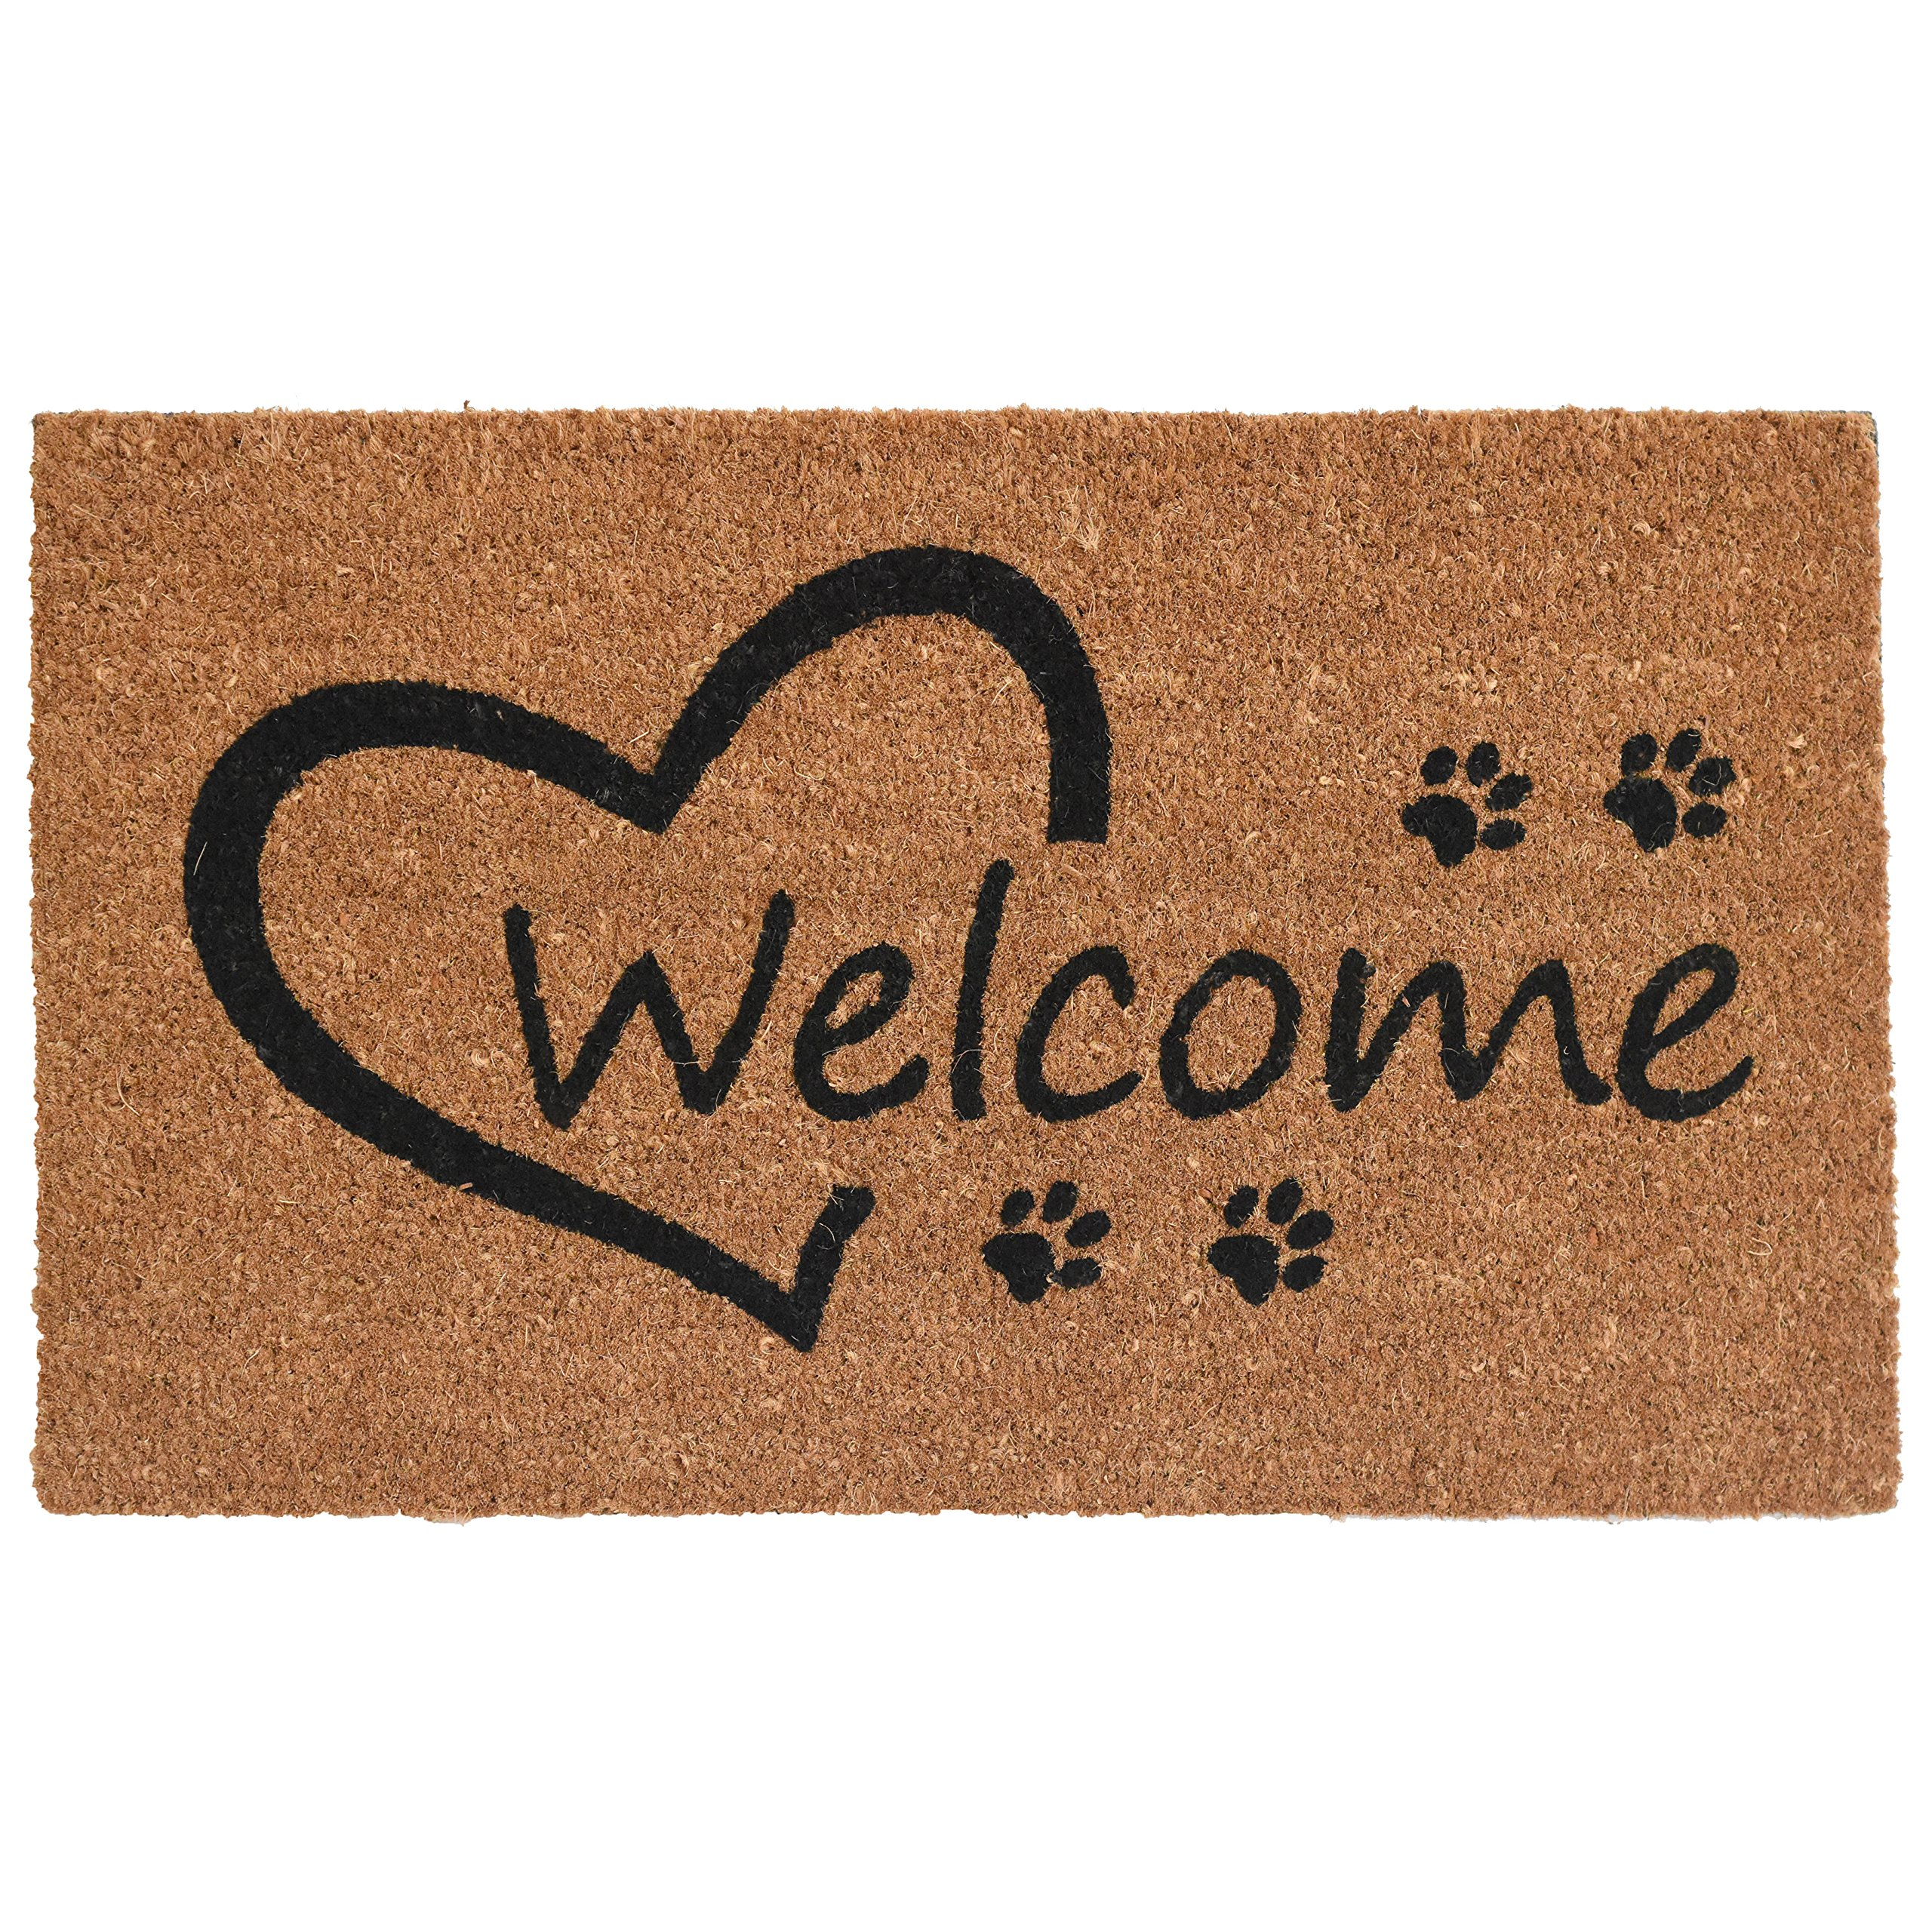 Home & More 103351729 Open Heart Paws Doormat, 17'' x 29'', Natural/Black